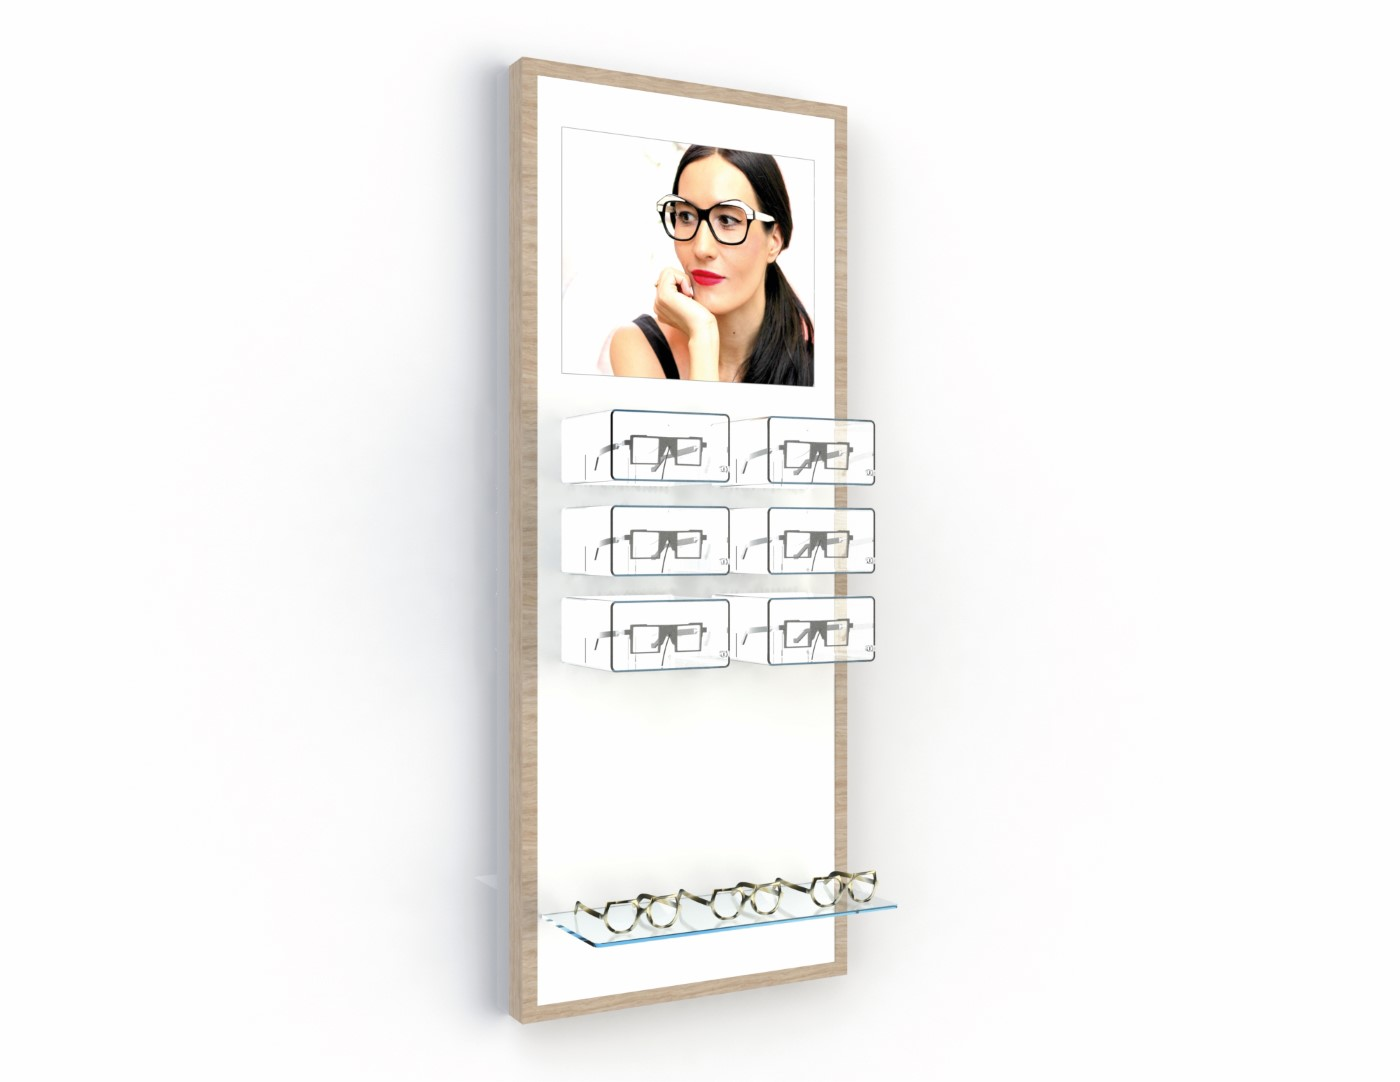 <strong>#58251ST</strong><br>6x lockable highlight boxes<br>1x cystal clear shelve<br>illuminated banner<br>12 frames